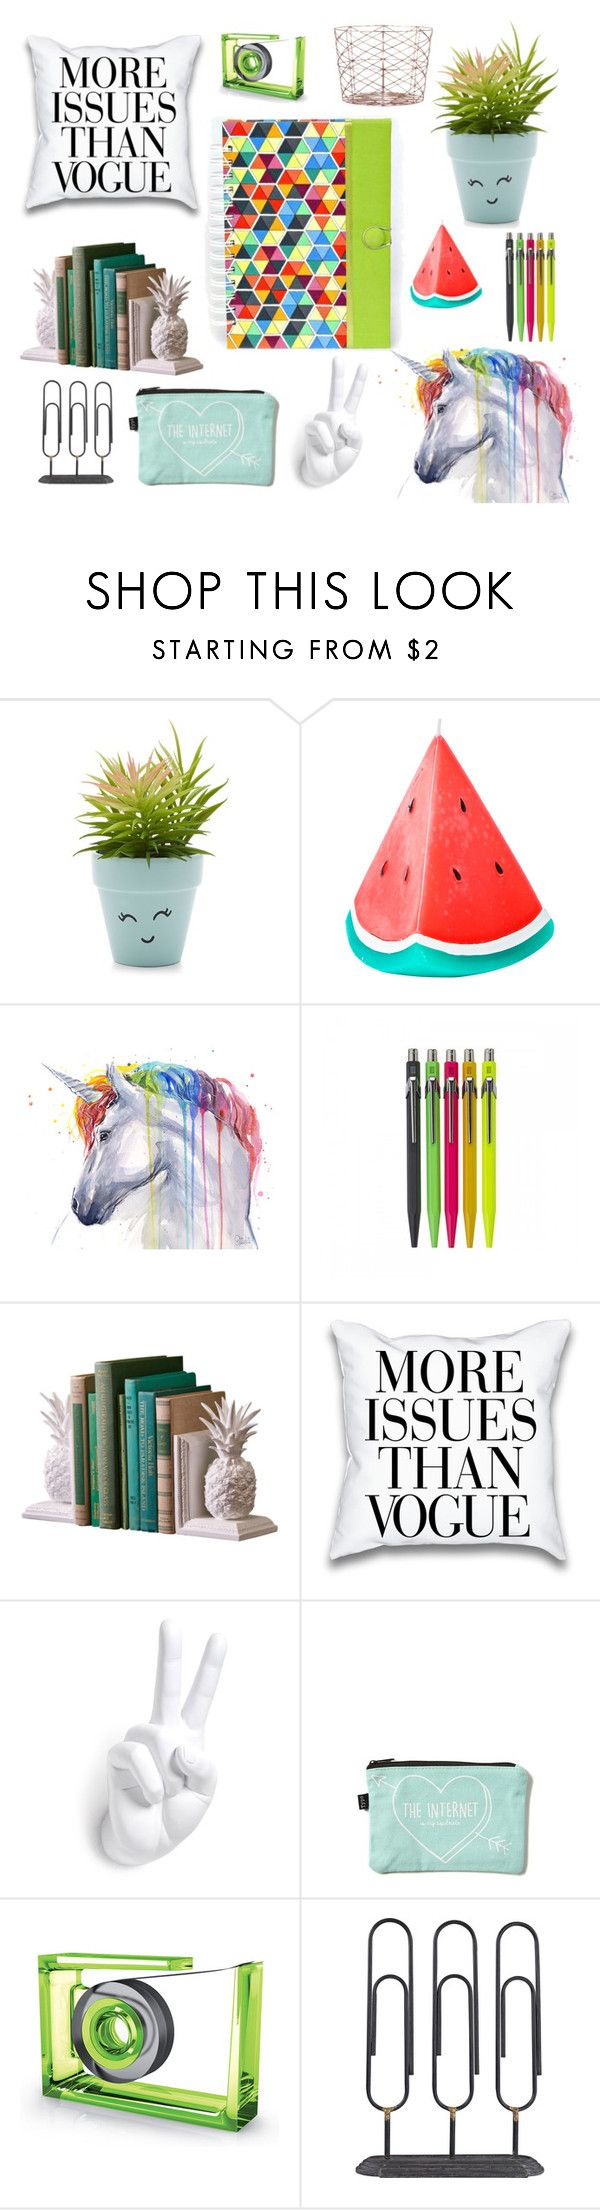 """""""Home Office #1"""" by iwona-estera on Polyvore featuring interior, interiors, interior design, home, home decor, interior decorating, New Look, Sunnylife, LEXON and Dot & Bo"""